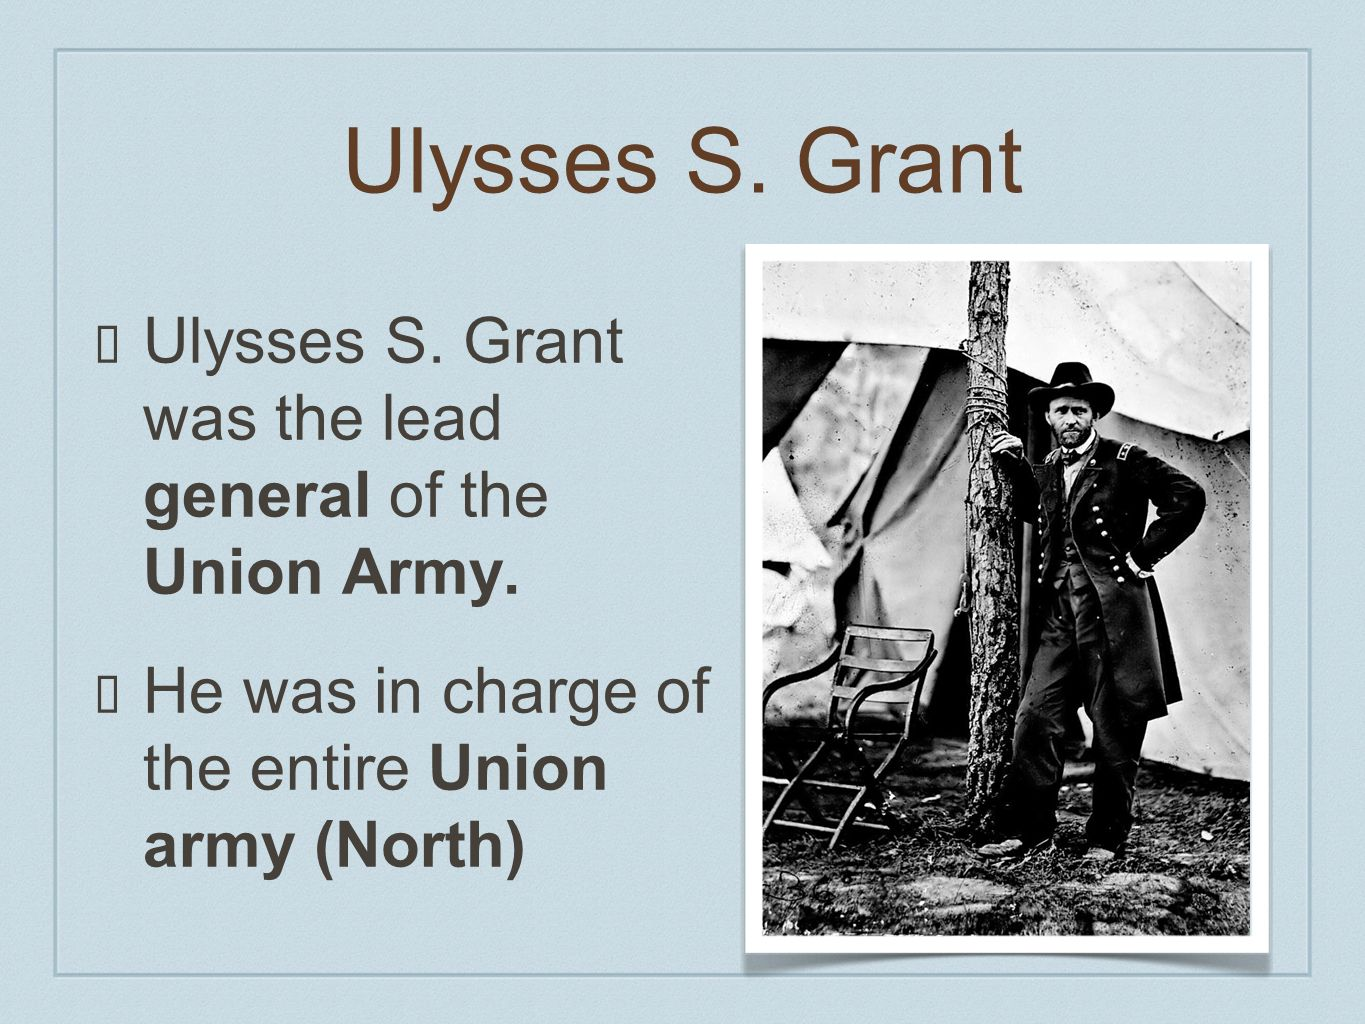 Ulysses S. Grant Ulysses S. Grant was the lead general of the Union Army.